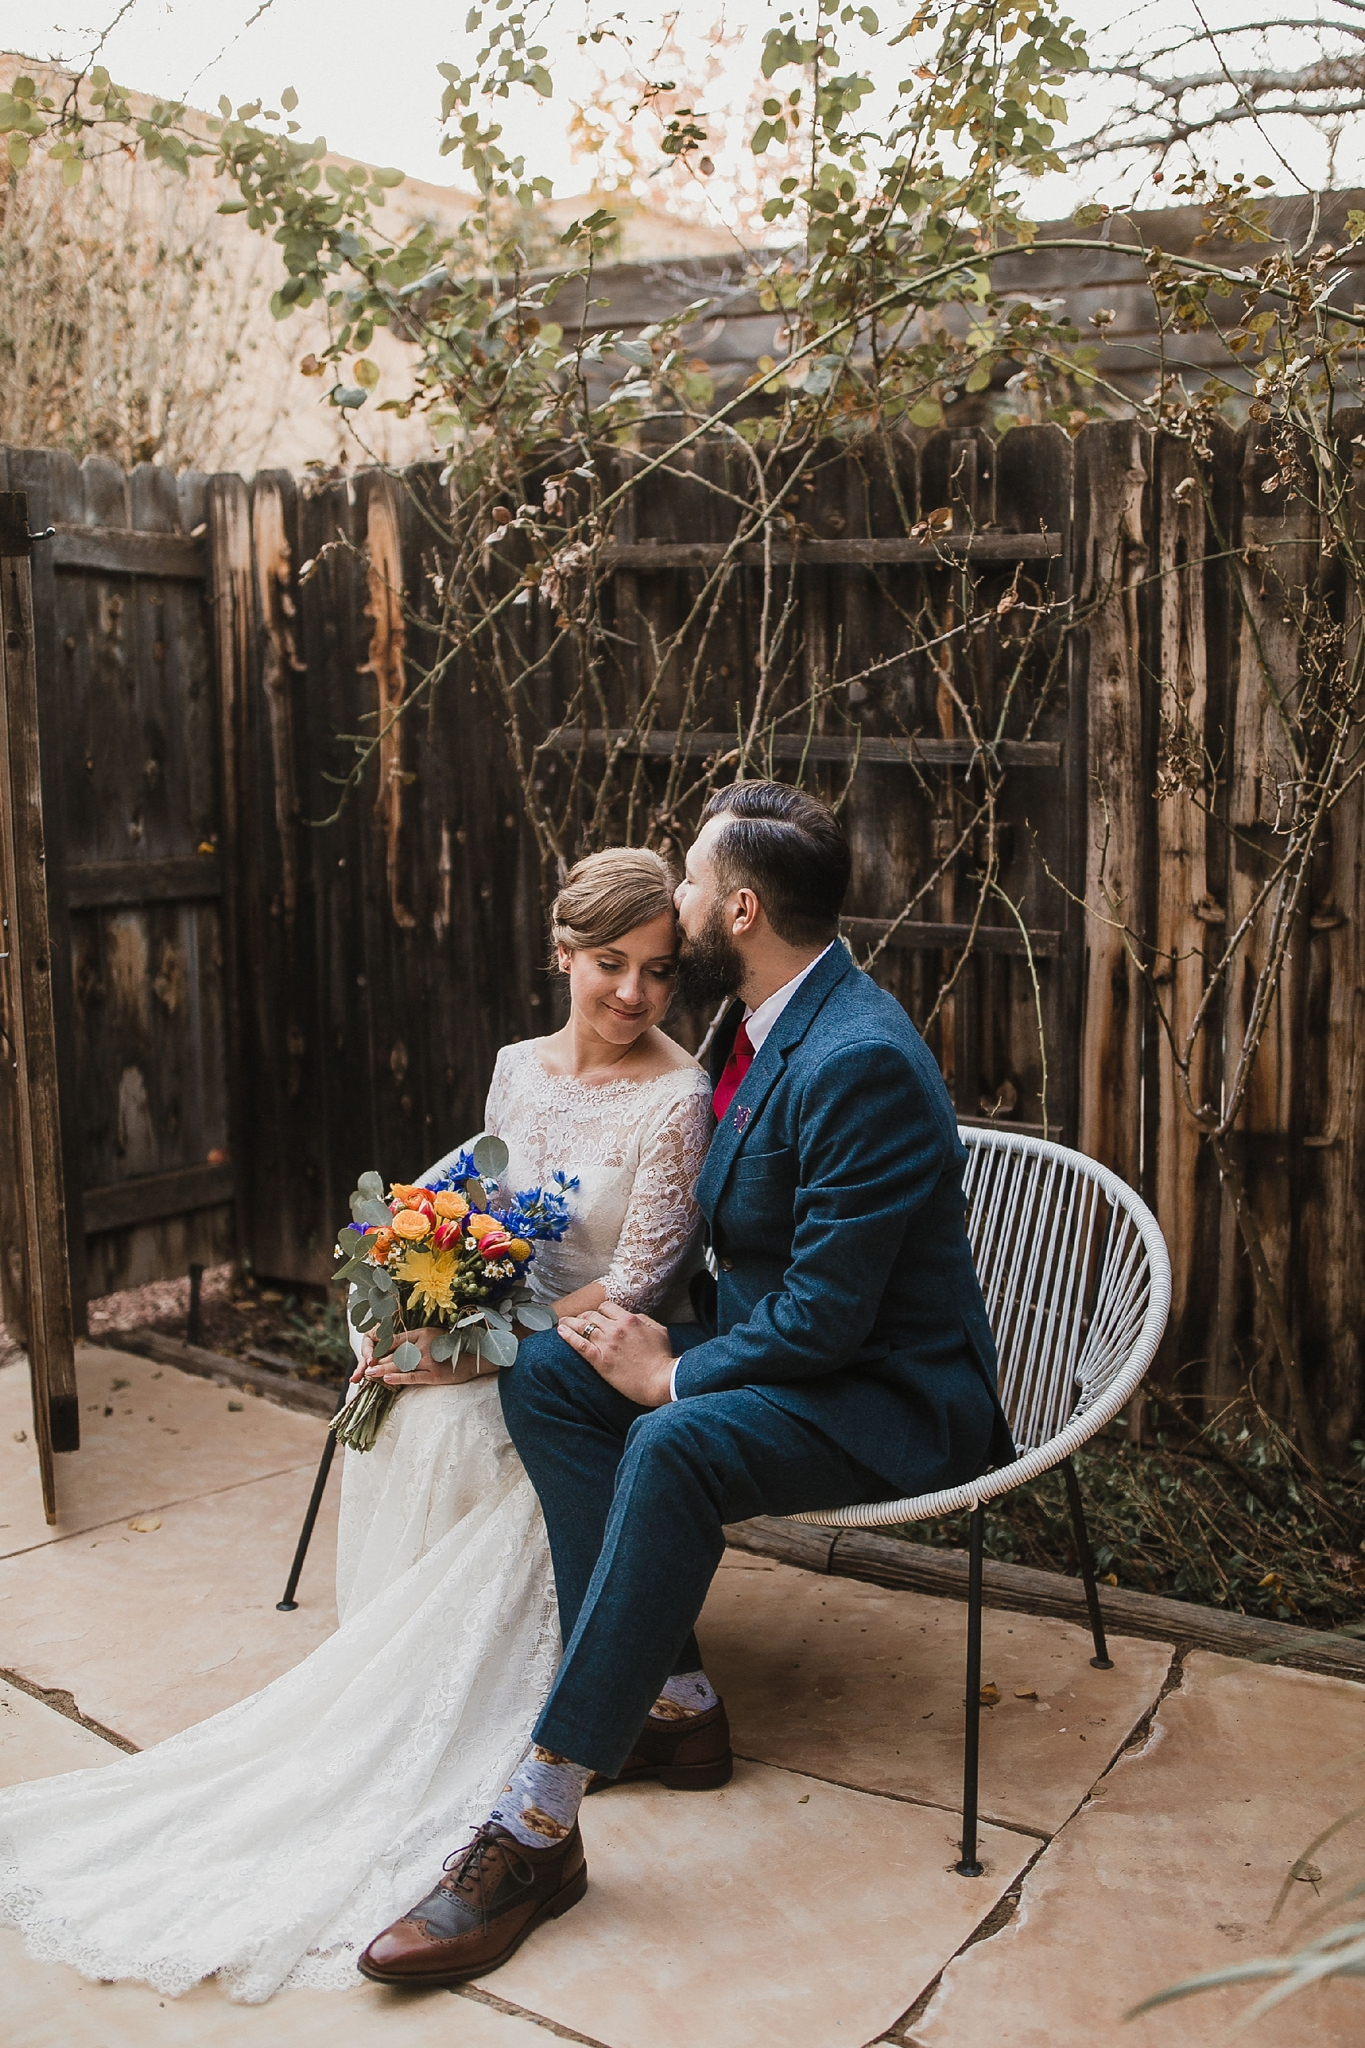 Alicia+lucia+photography+-+albuquerque+wedding+photographer+-+santa+fe+wedding+photography+-+new+mexico+wedding+photographer+-+albuquerque+wedding+-+sarabande+bed+breakfast+-+bed+and+breakfast+wedding_0075.jpg